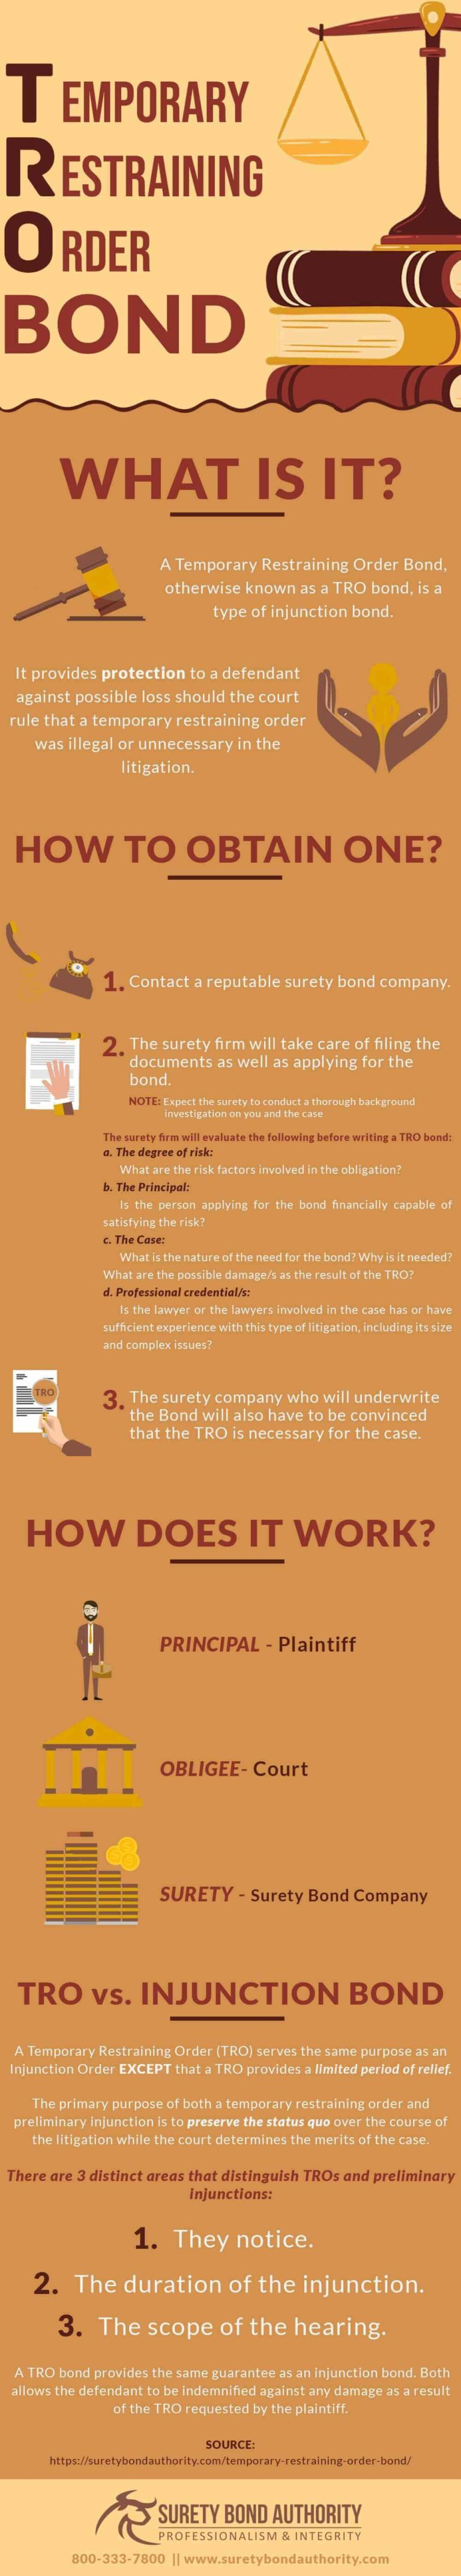 Temporary Restraining Order Infographic